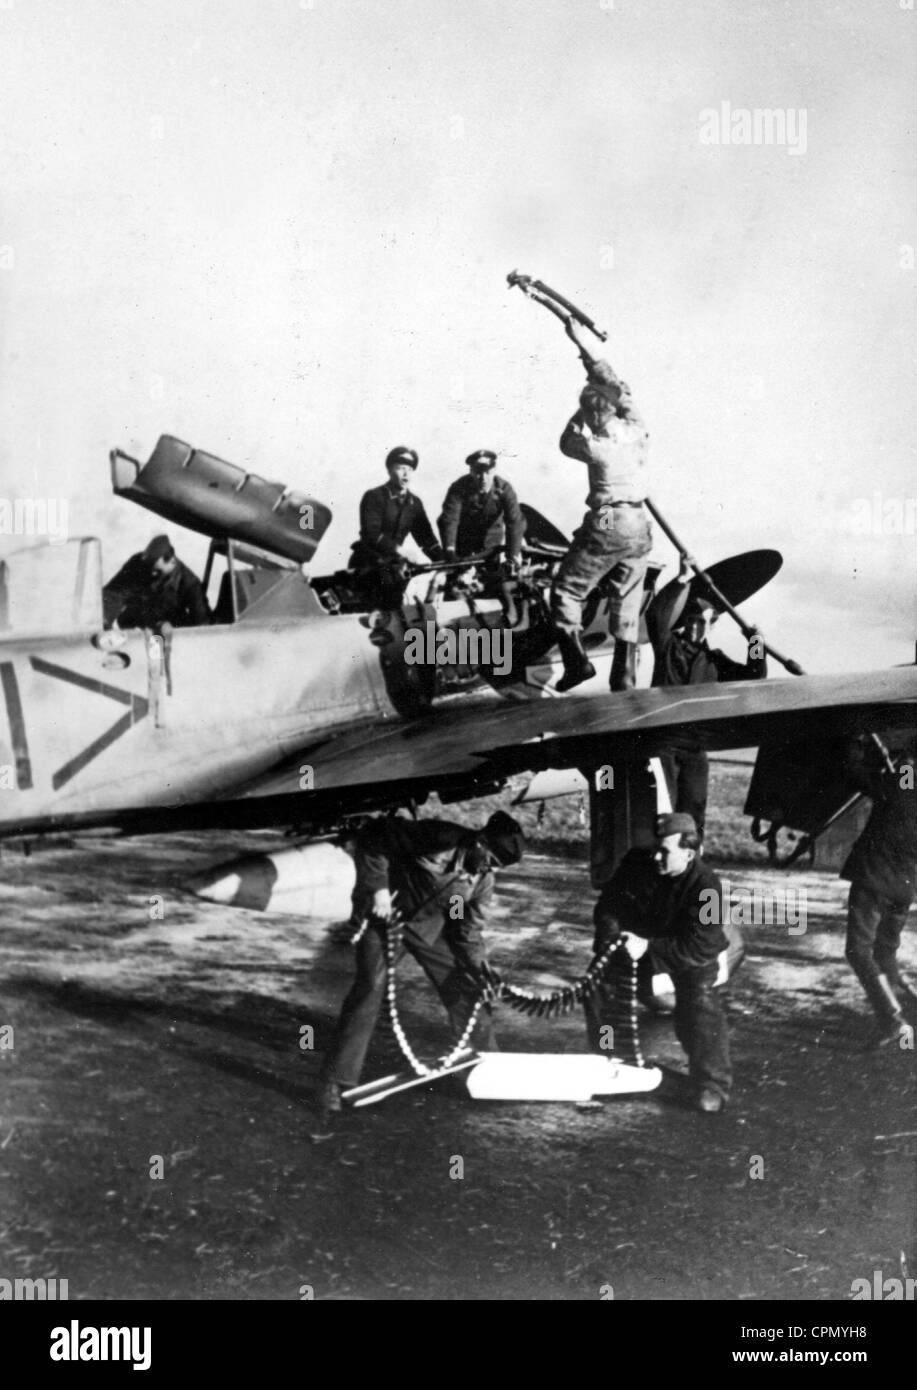 A Fighter Plane is Being Prepared for an Operation, 1944 - Stock Image